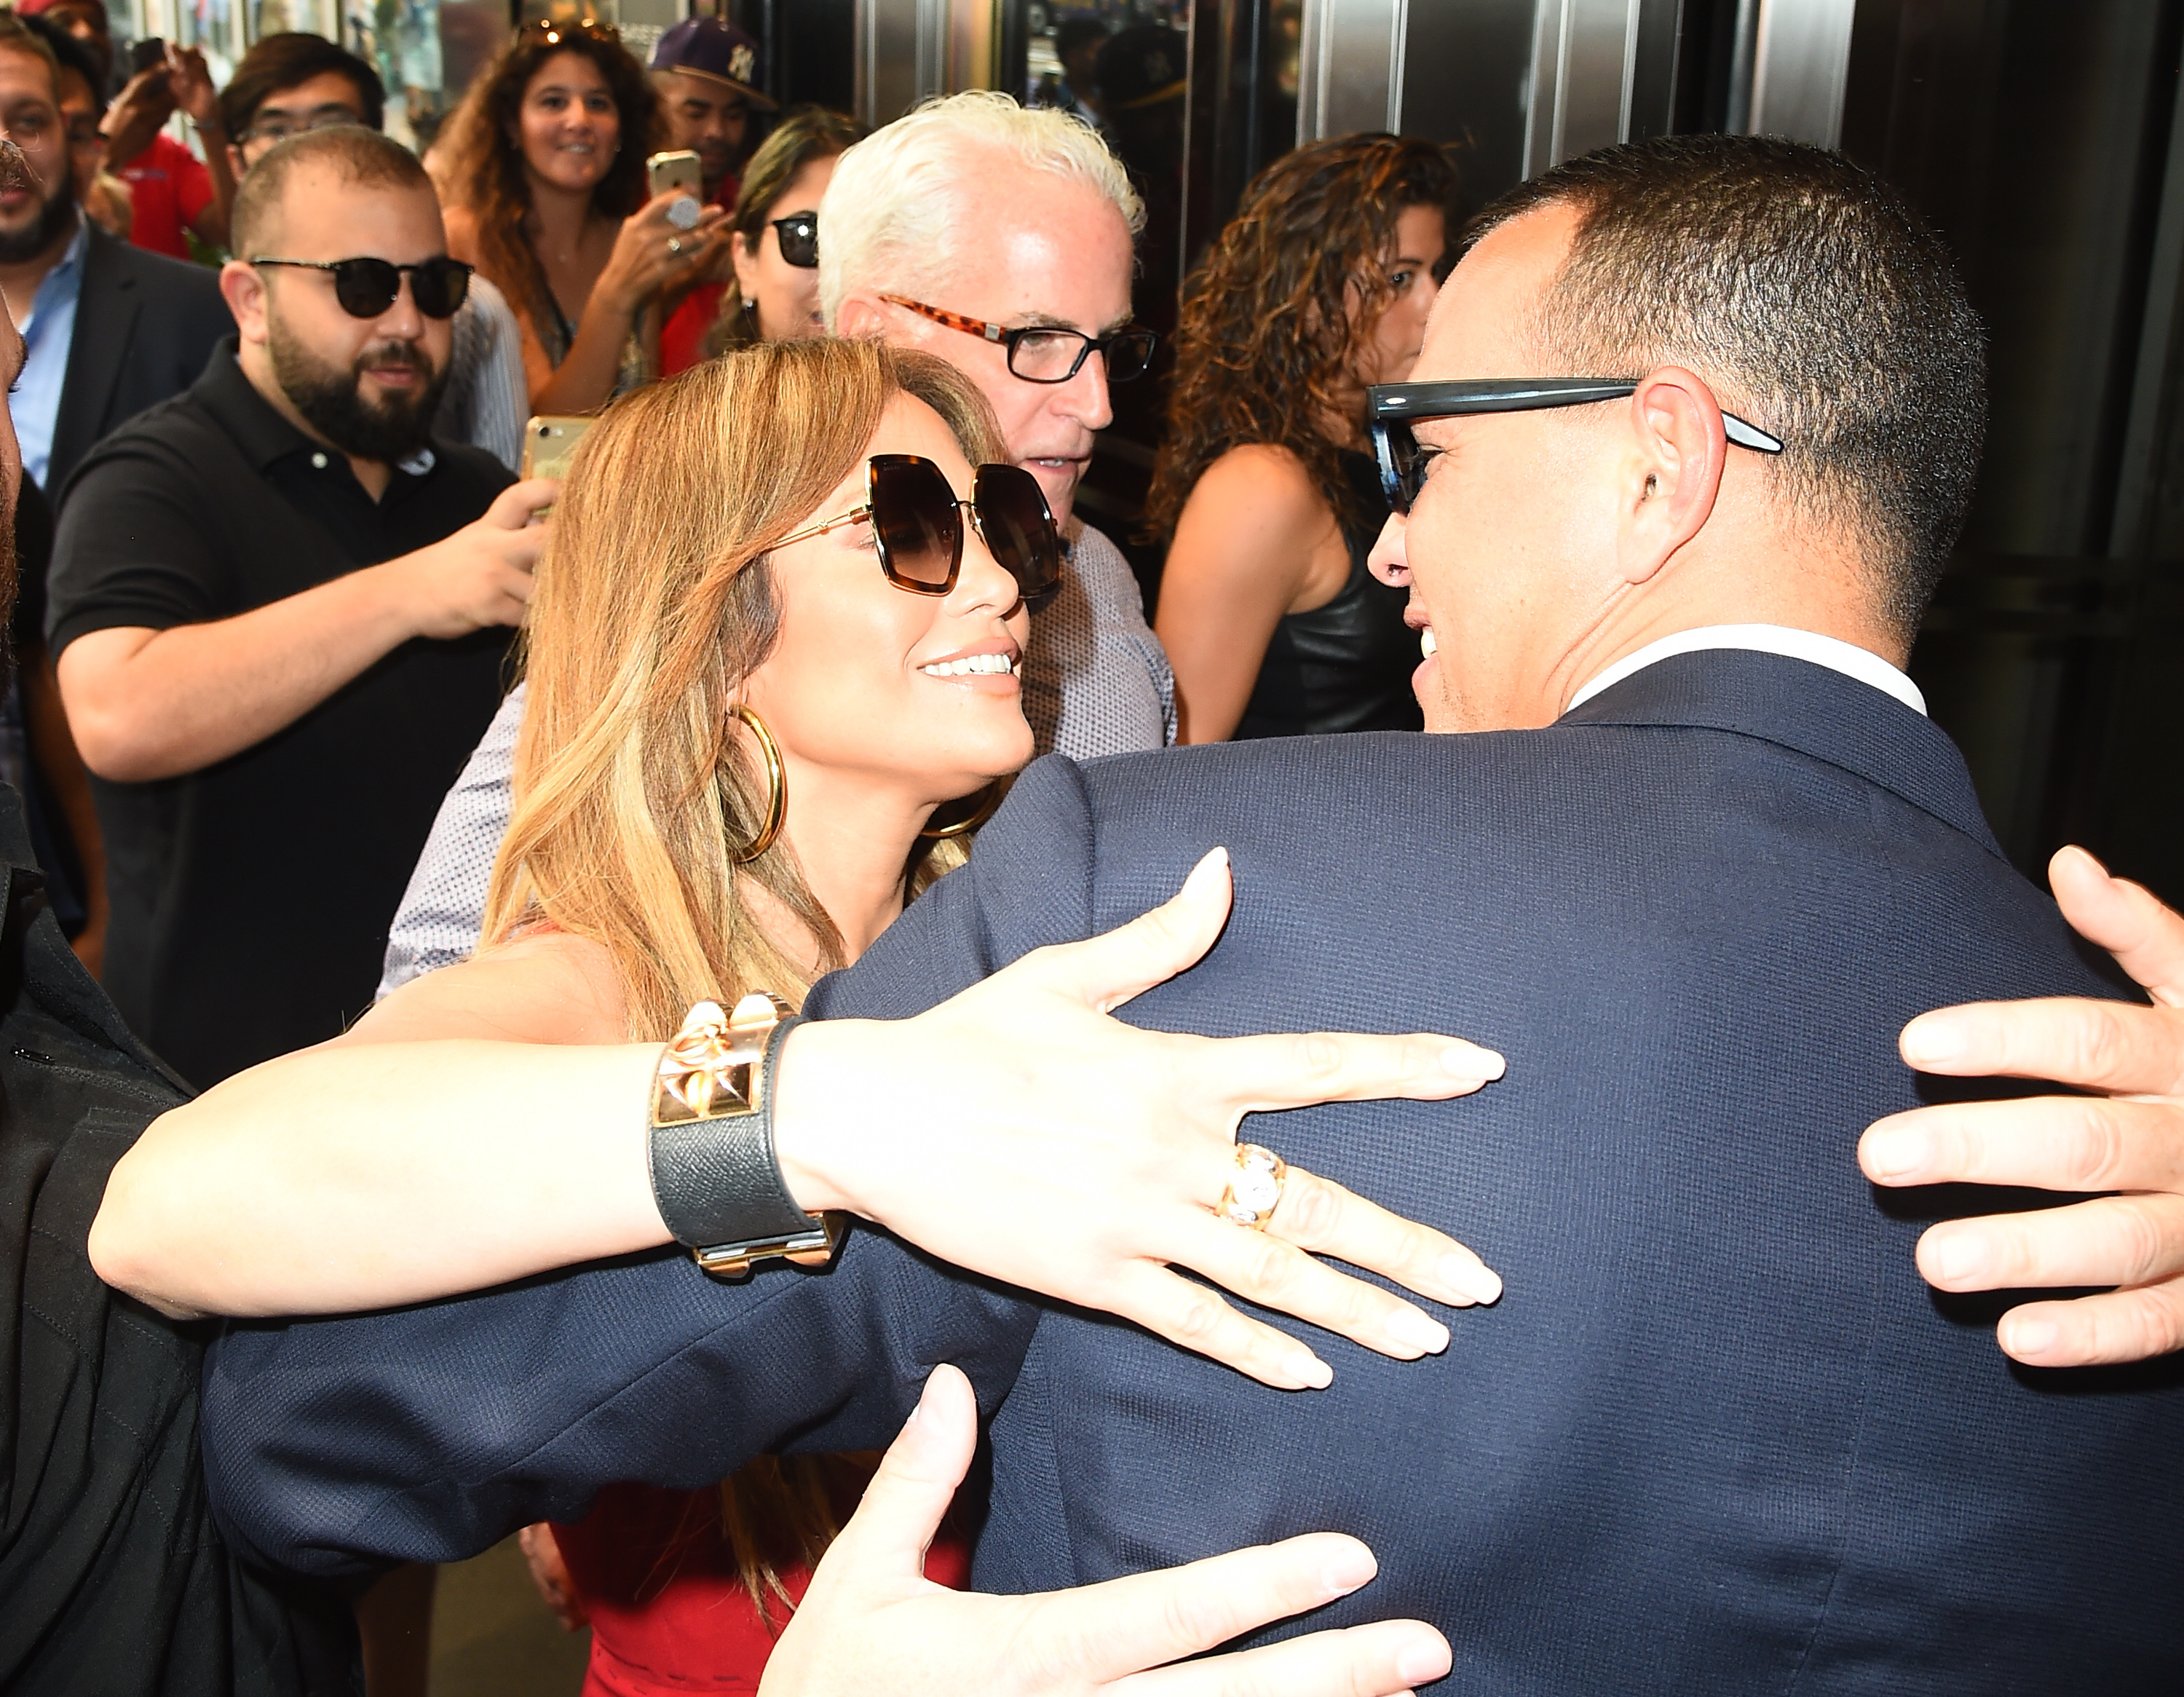 Jennifer Lopez was spotted getting close with Alex Rodriguez on 34th Street in New York City on Sept. 29, 2017.